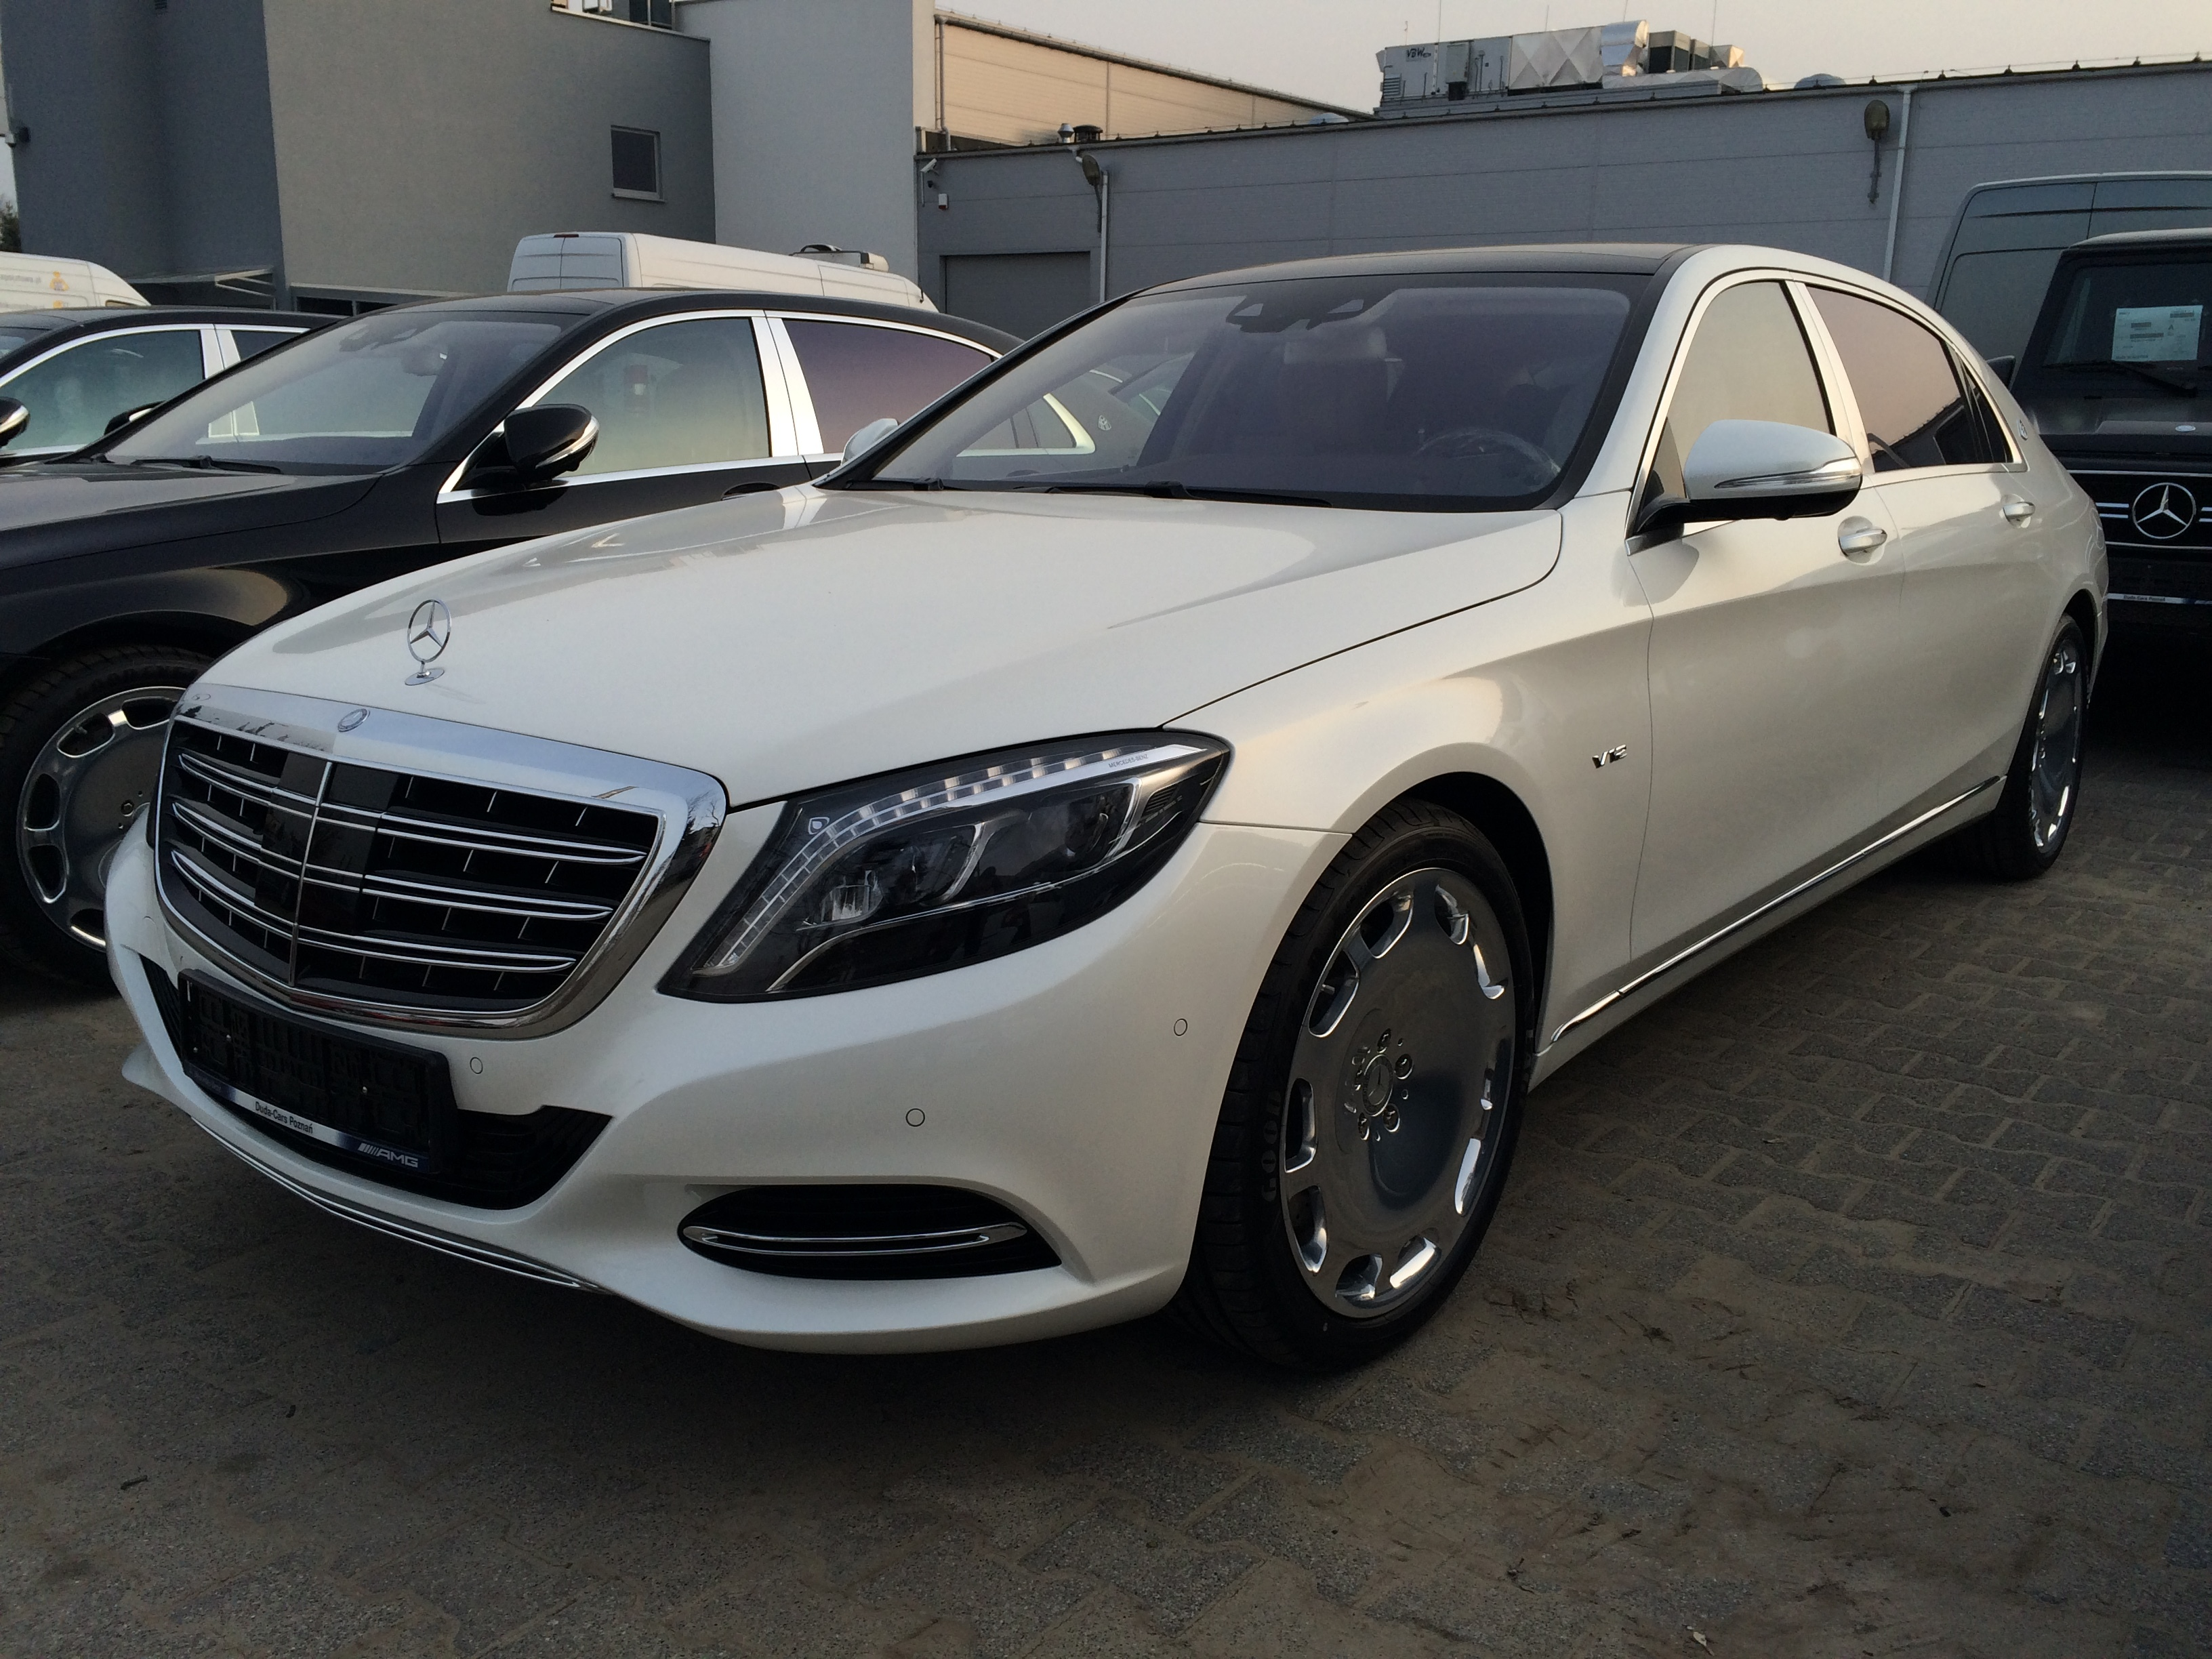 New 2015 mercedes s600 maybach product price buy aircrafts for S600 mercedes benz for sale